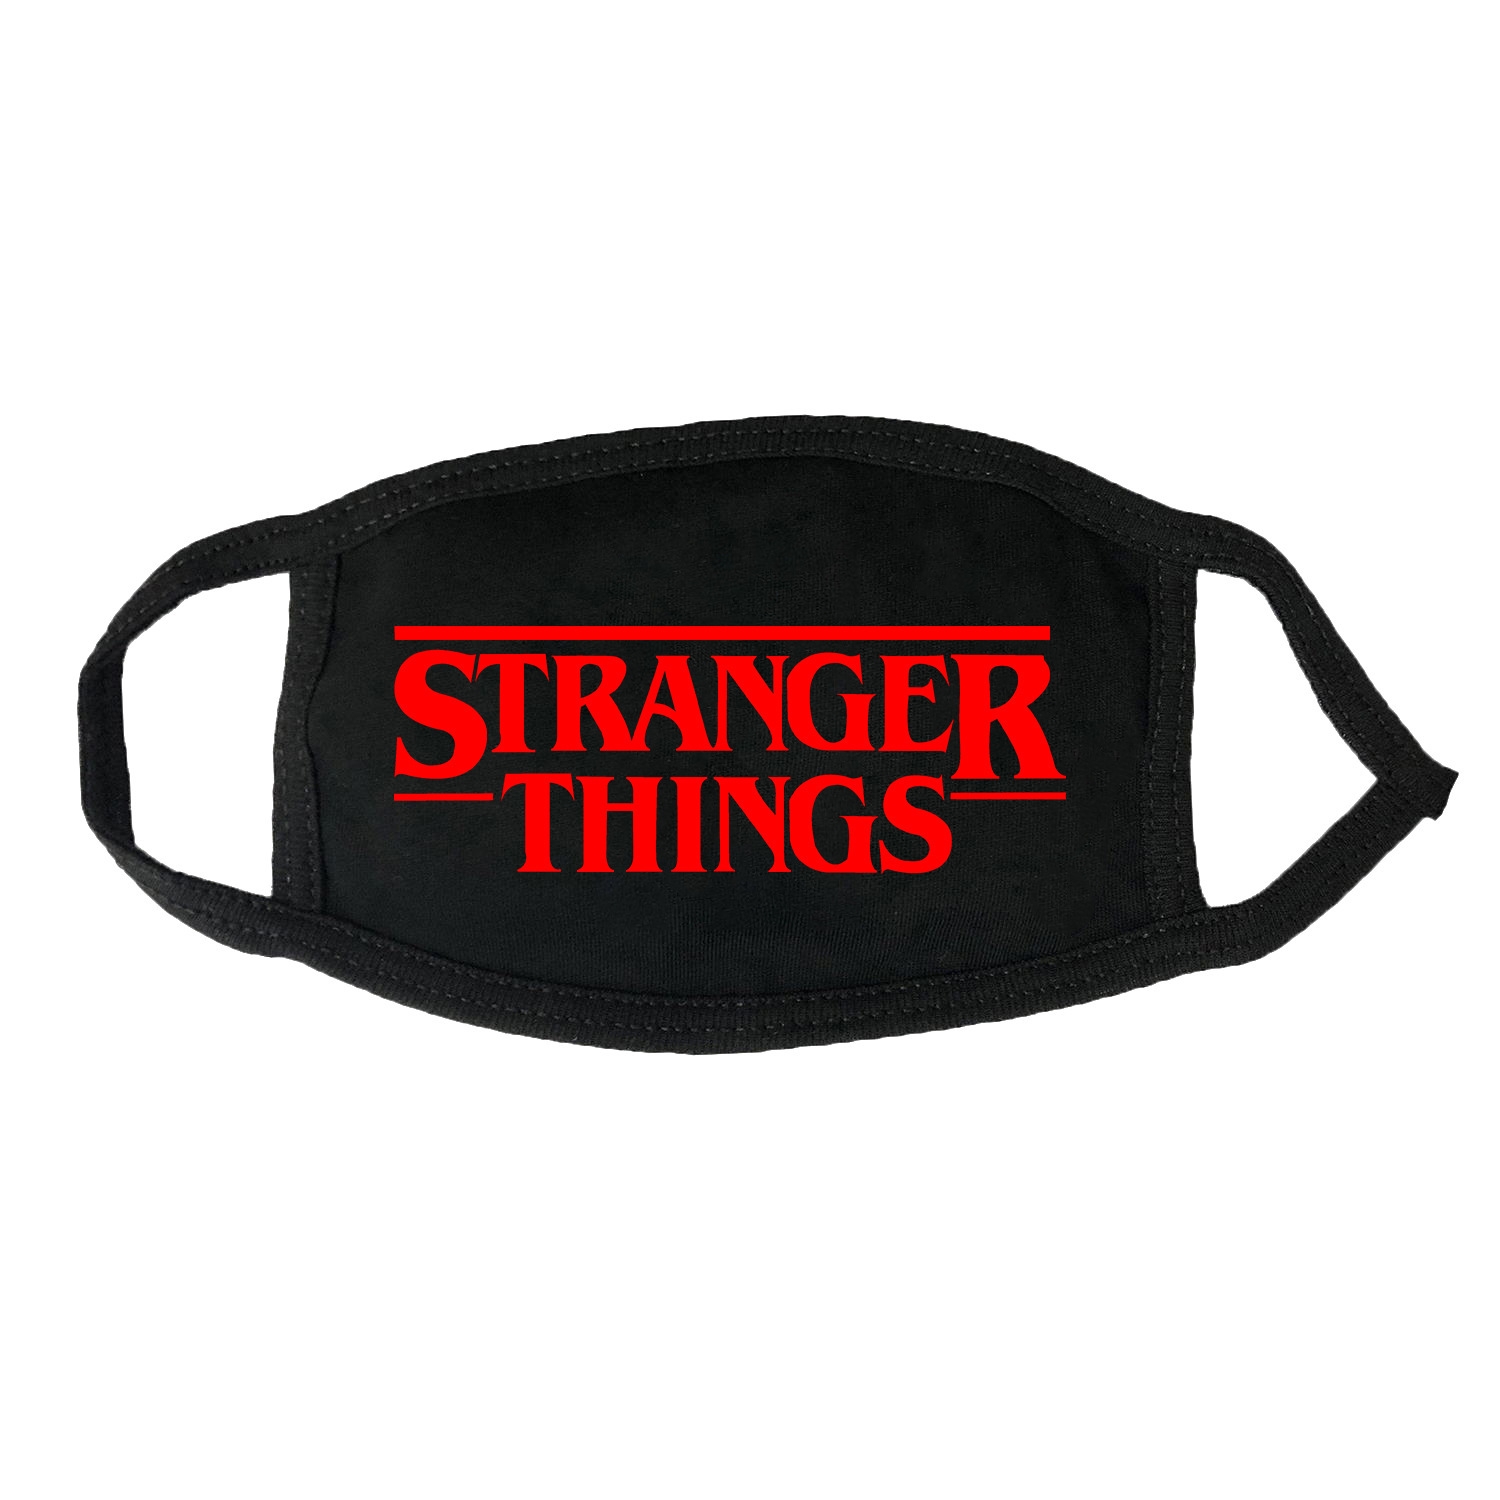 Stranger Things Mask Dustproof Defence Peculiar Smell Pure Cotton Solid Color Letter Printing Hanging Ear Type Mask